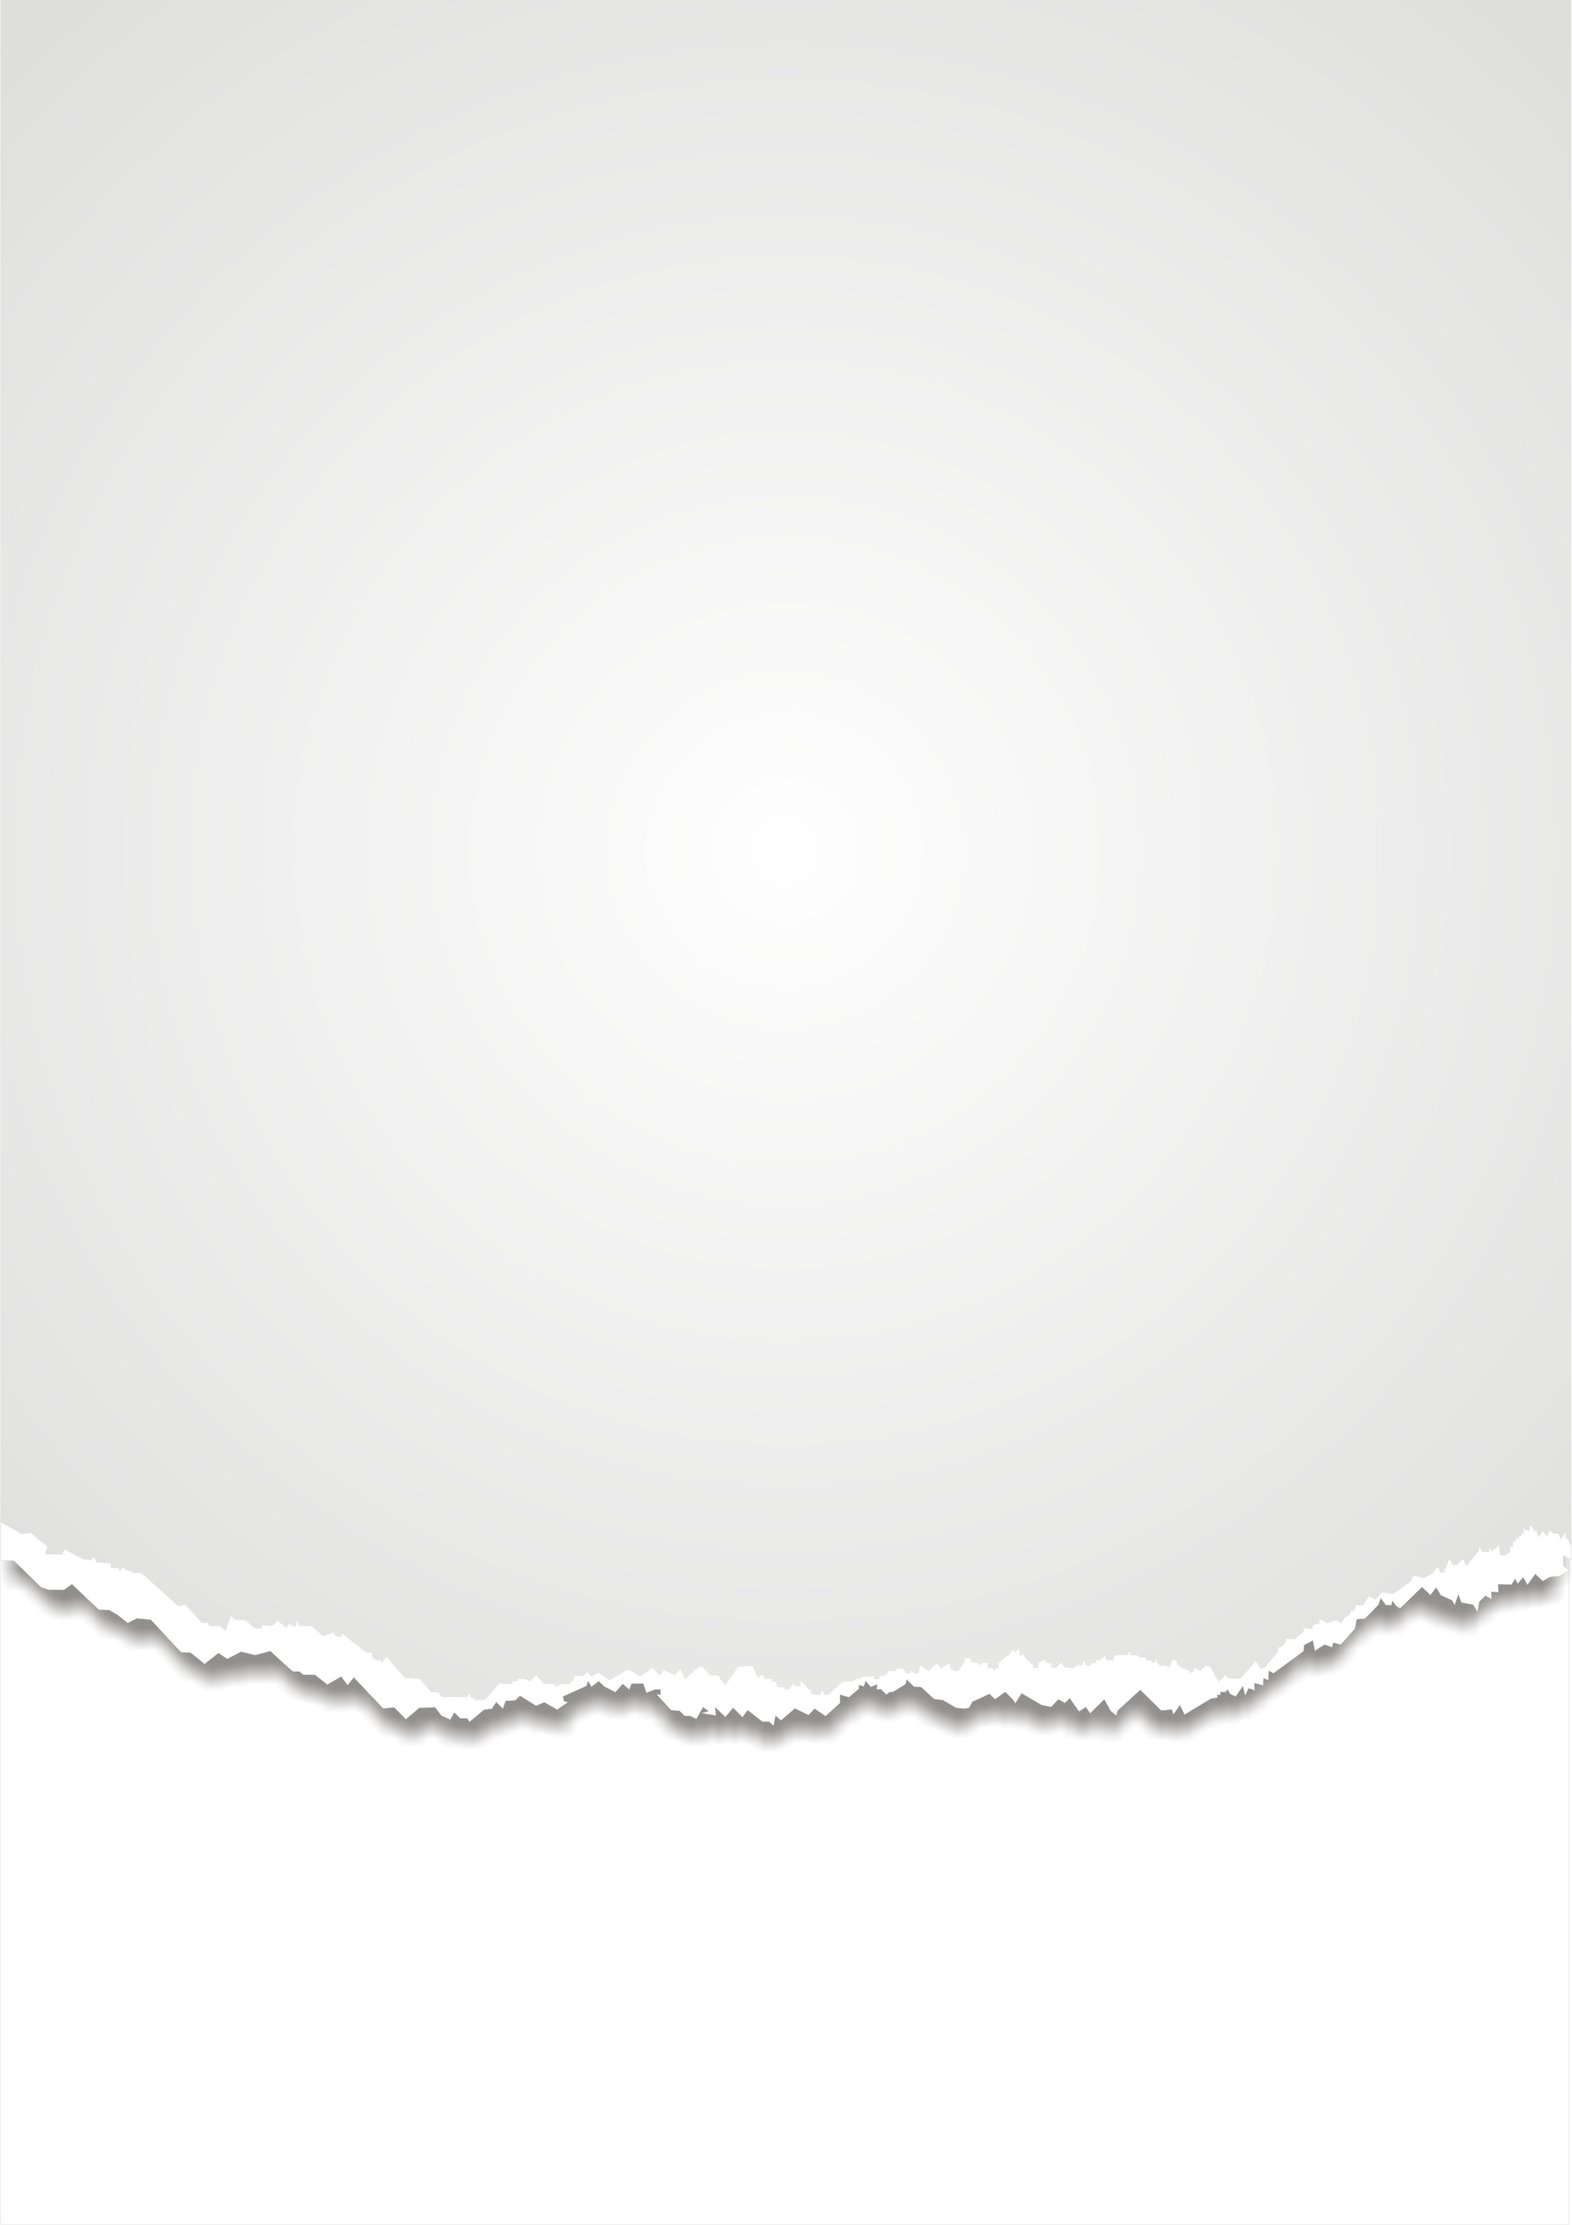 Paper clipart archive Clipart Clip by Clipart library